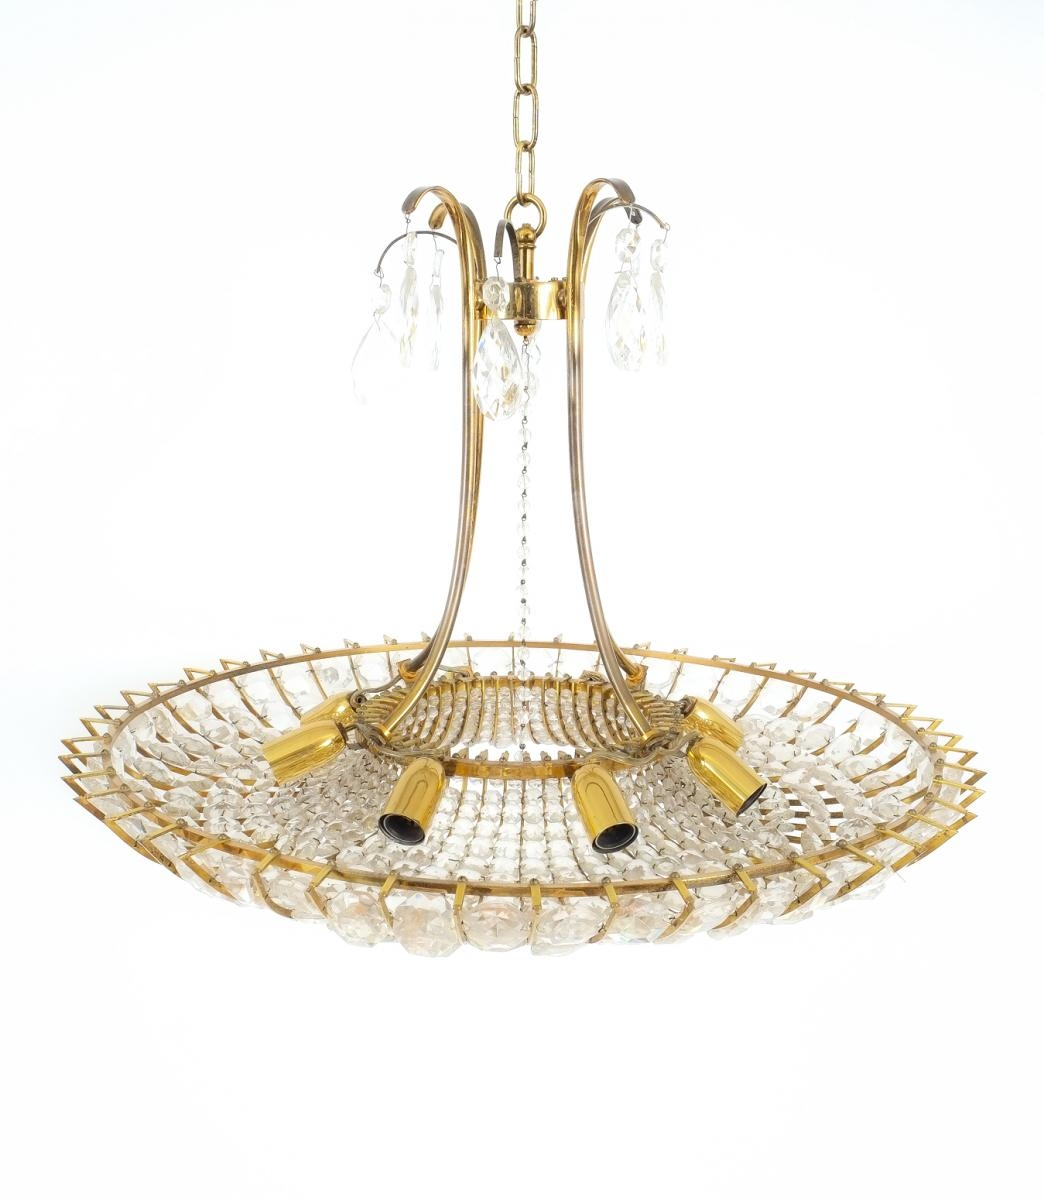 Large Brass Glass Chandelier 1960s For Sale At Pamono Inside Brass And Glass Chandelier (Image 4 of 15)